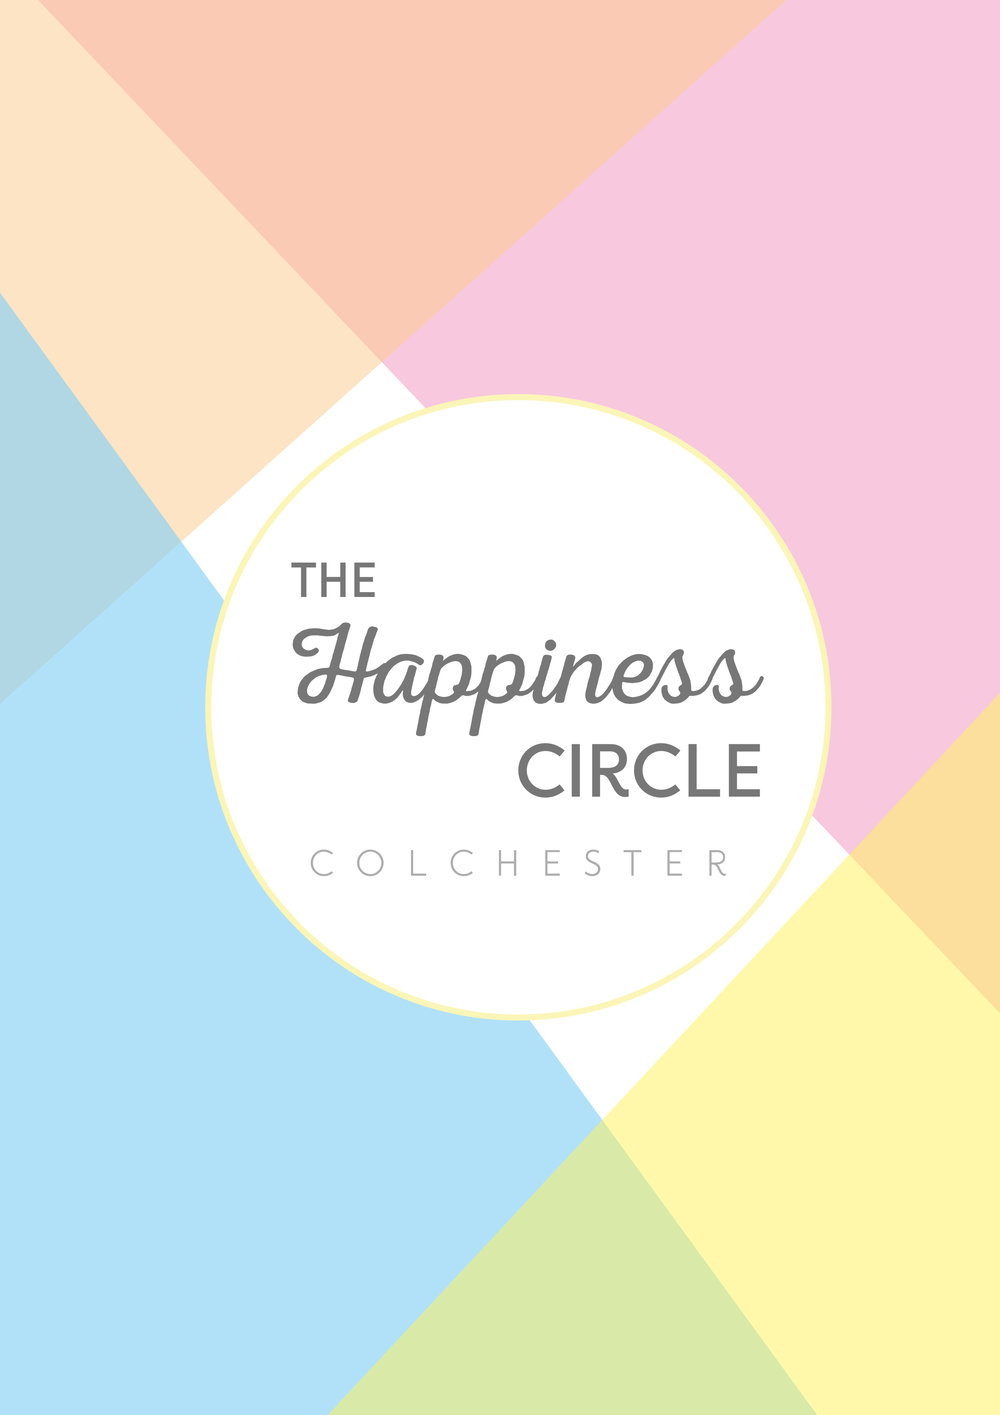 Happiness Circle logo V3 - smaller even background.jpg